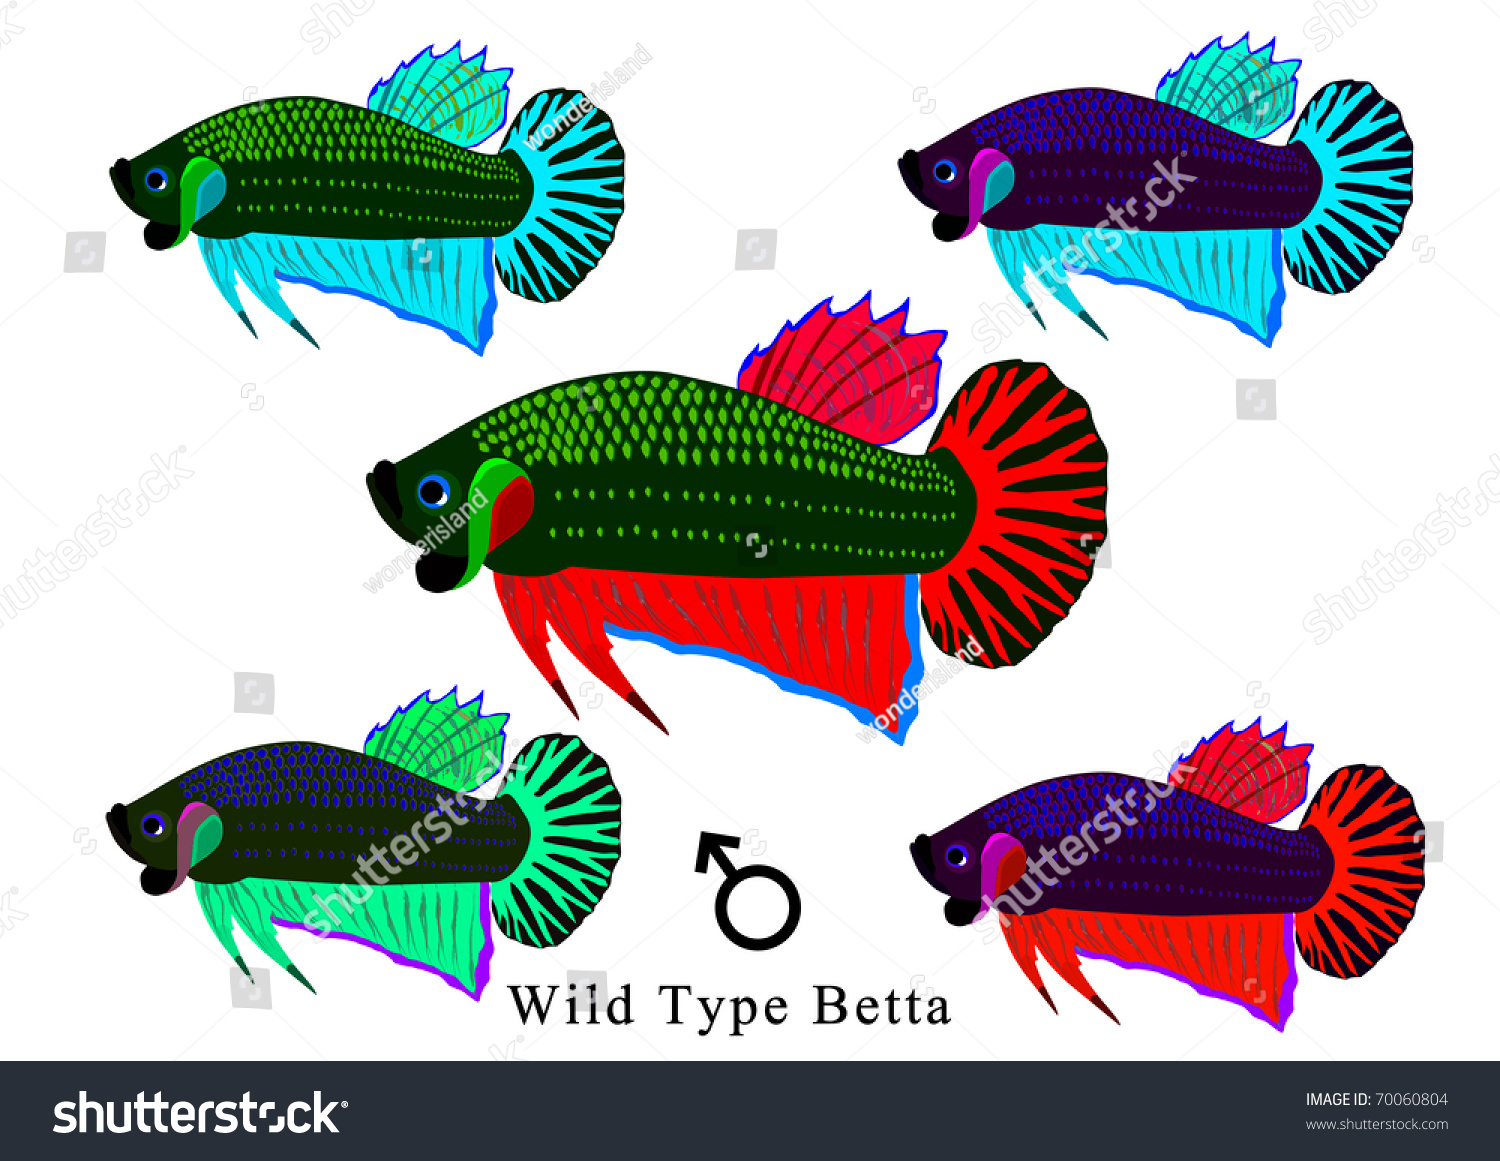 Wild Type Betta Stock Illustration 70060804 - Shutterstock